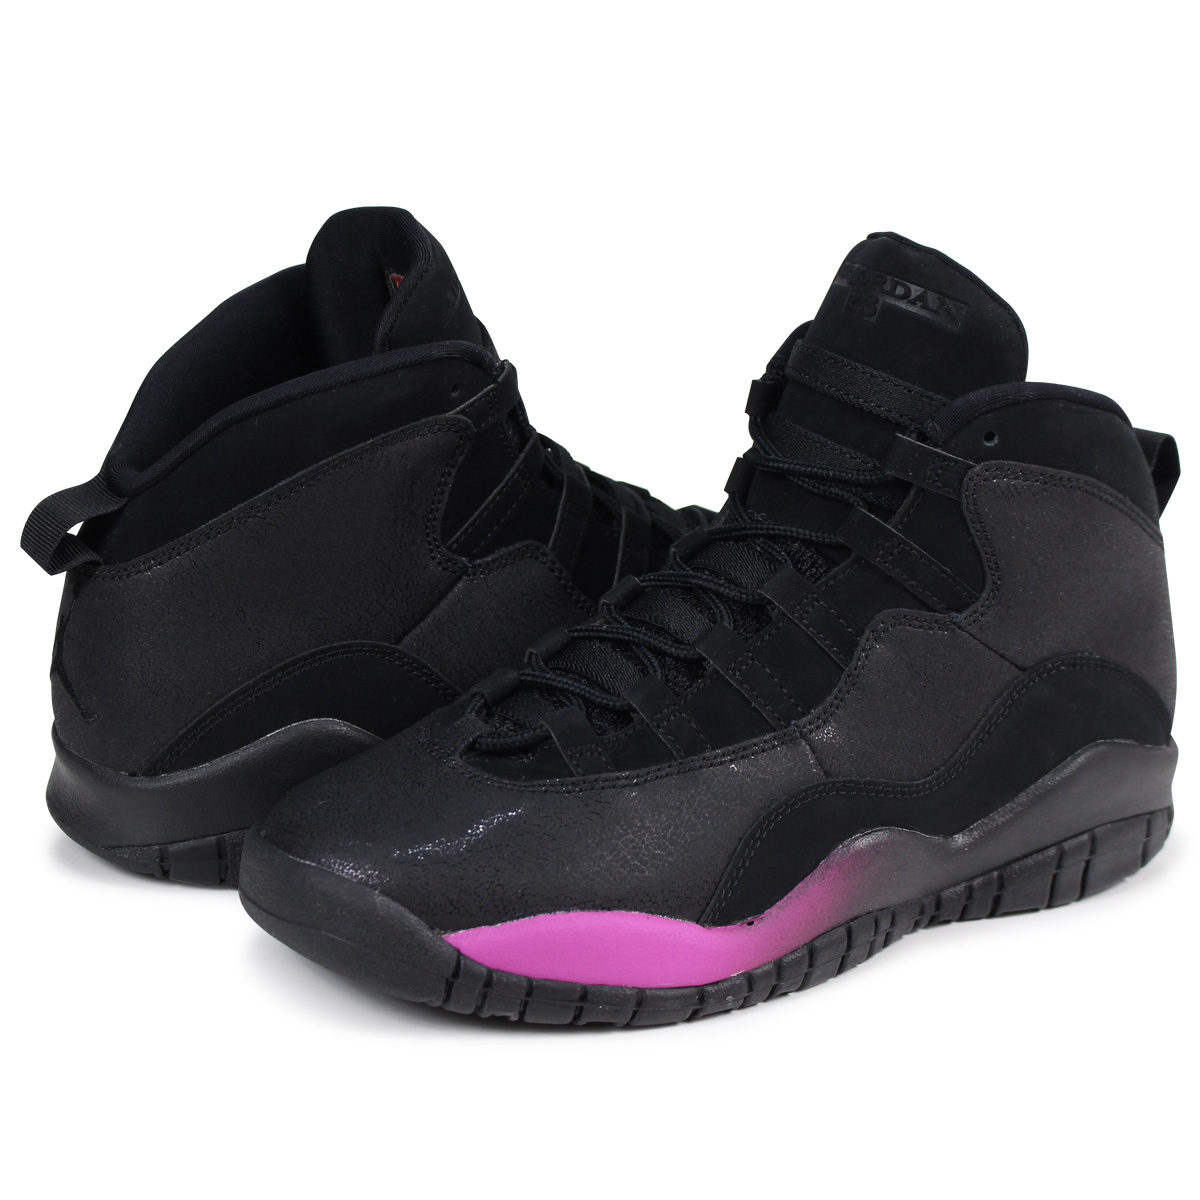 61cdc36888e4 Whats up Sports  NIKE AIR JORDAN 10 RETRO GG Nike Air Jordan 10 ...